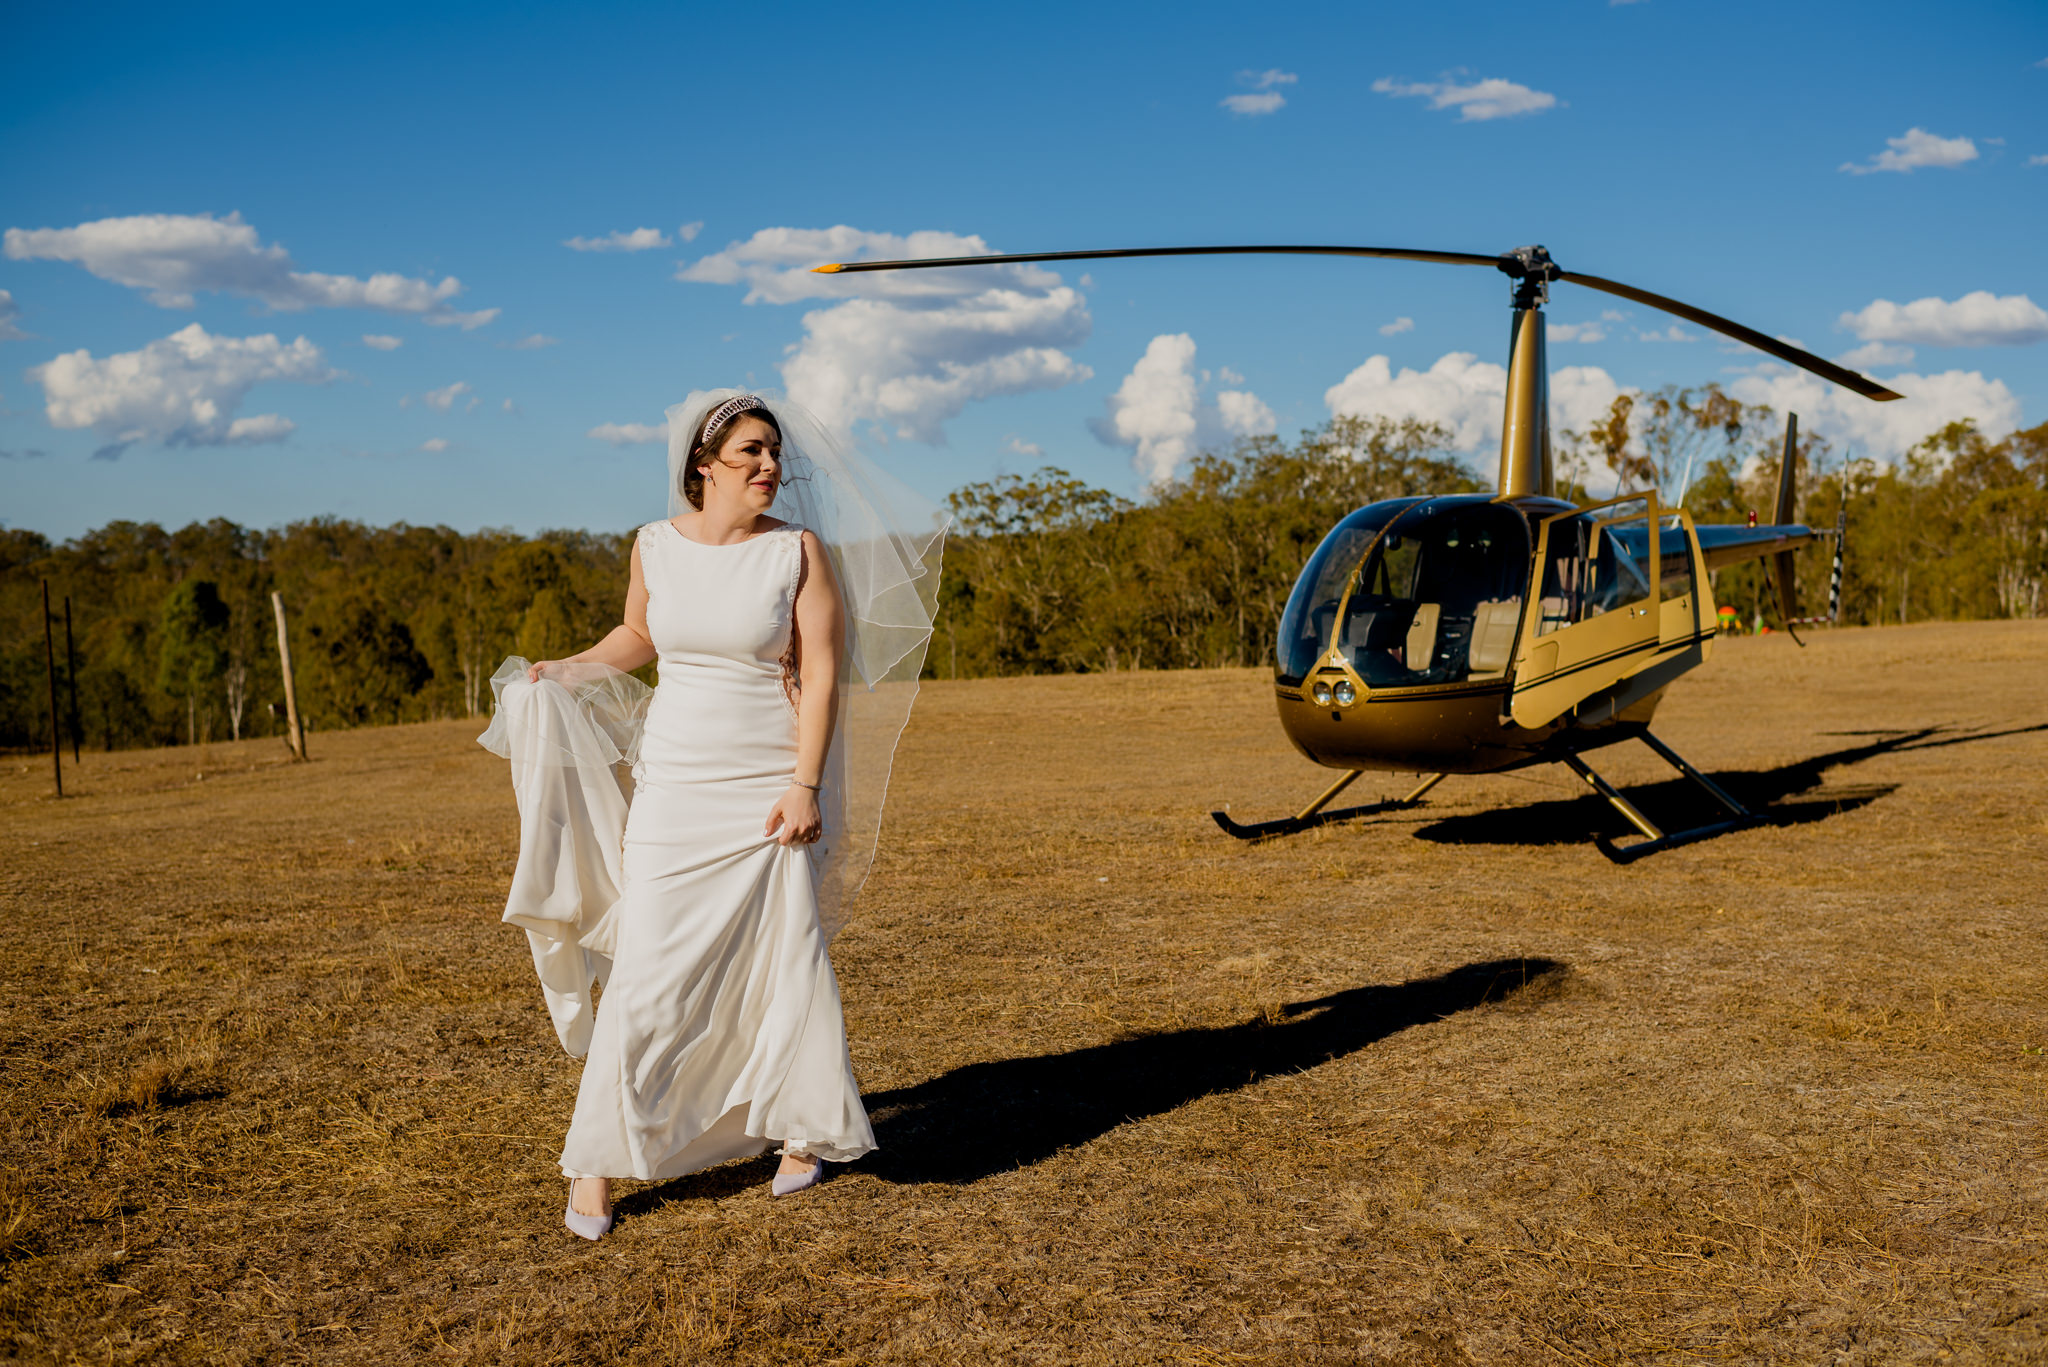 Bride holding her dress in front of a landed helicopter